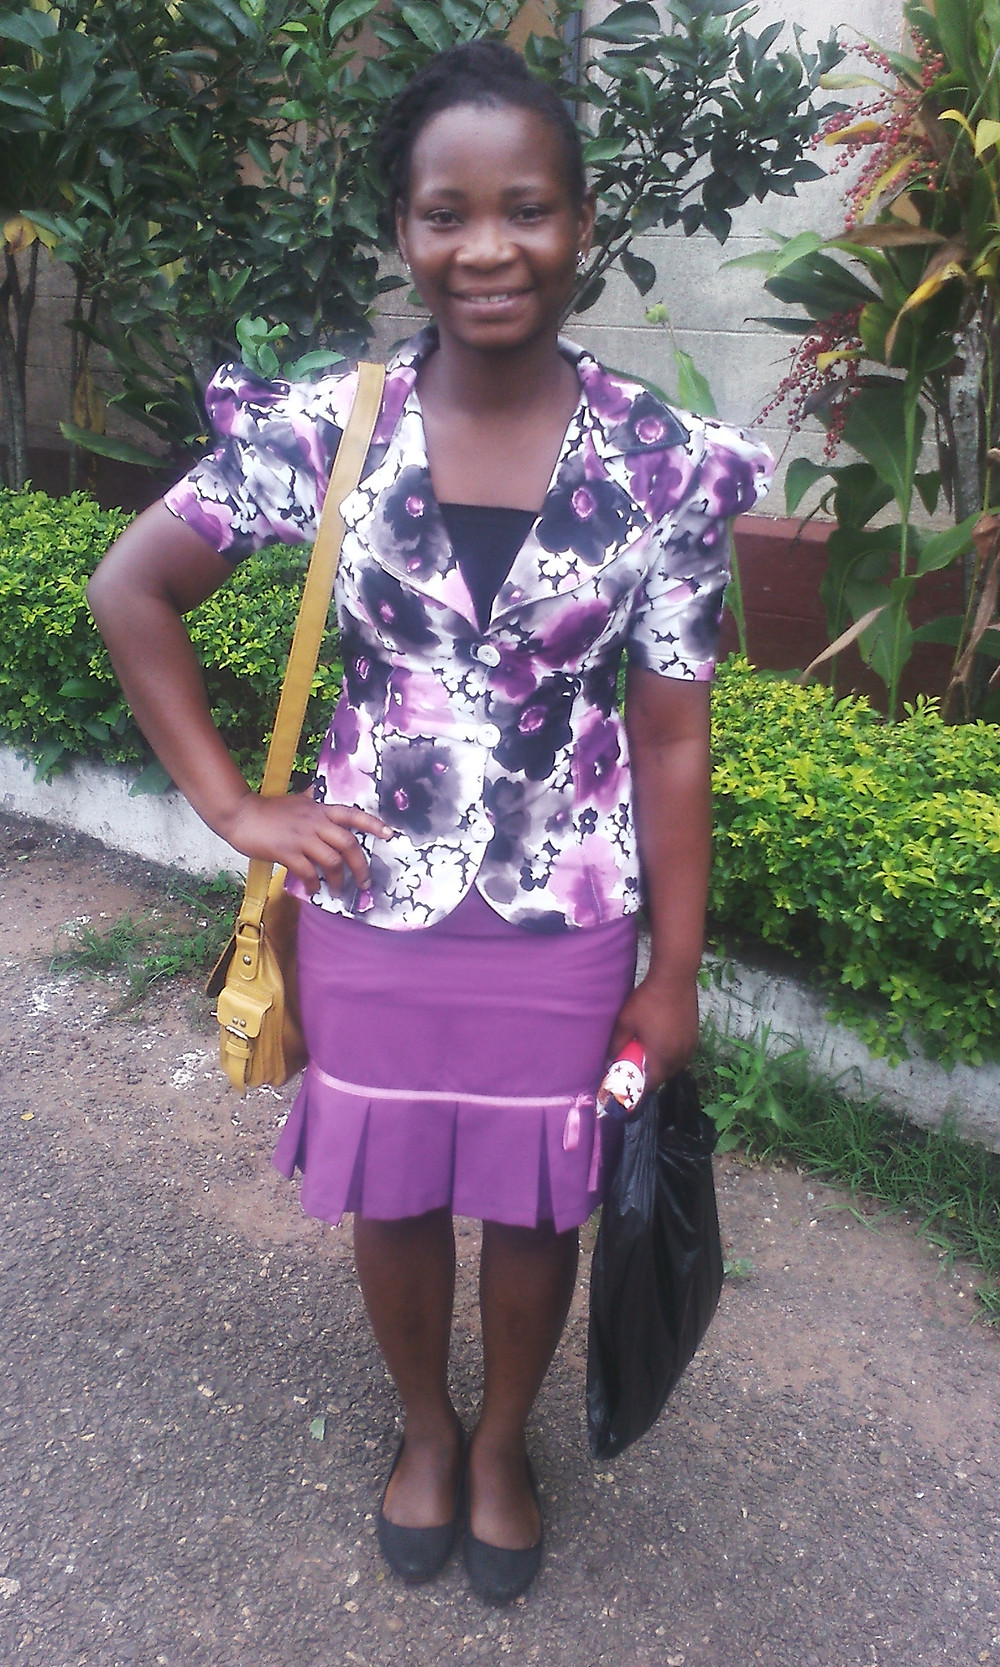 Photo of Victoria Aggrey - dressed in suit with purple flower print, classy hairstyle, and smiling. She is standing with hand on hip and with bags in font of green foliage behind her. The Deaf Dream sponsors scholarships for Deaf college students in developing nations. Carol MacNicholl, Destiny Yarbro, Sanne Winsser board of directors.